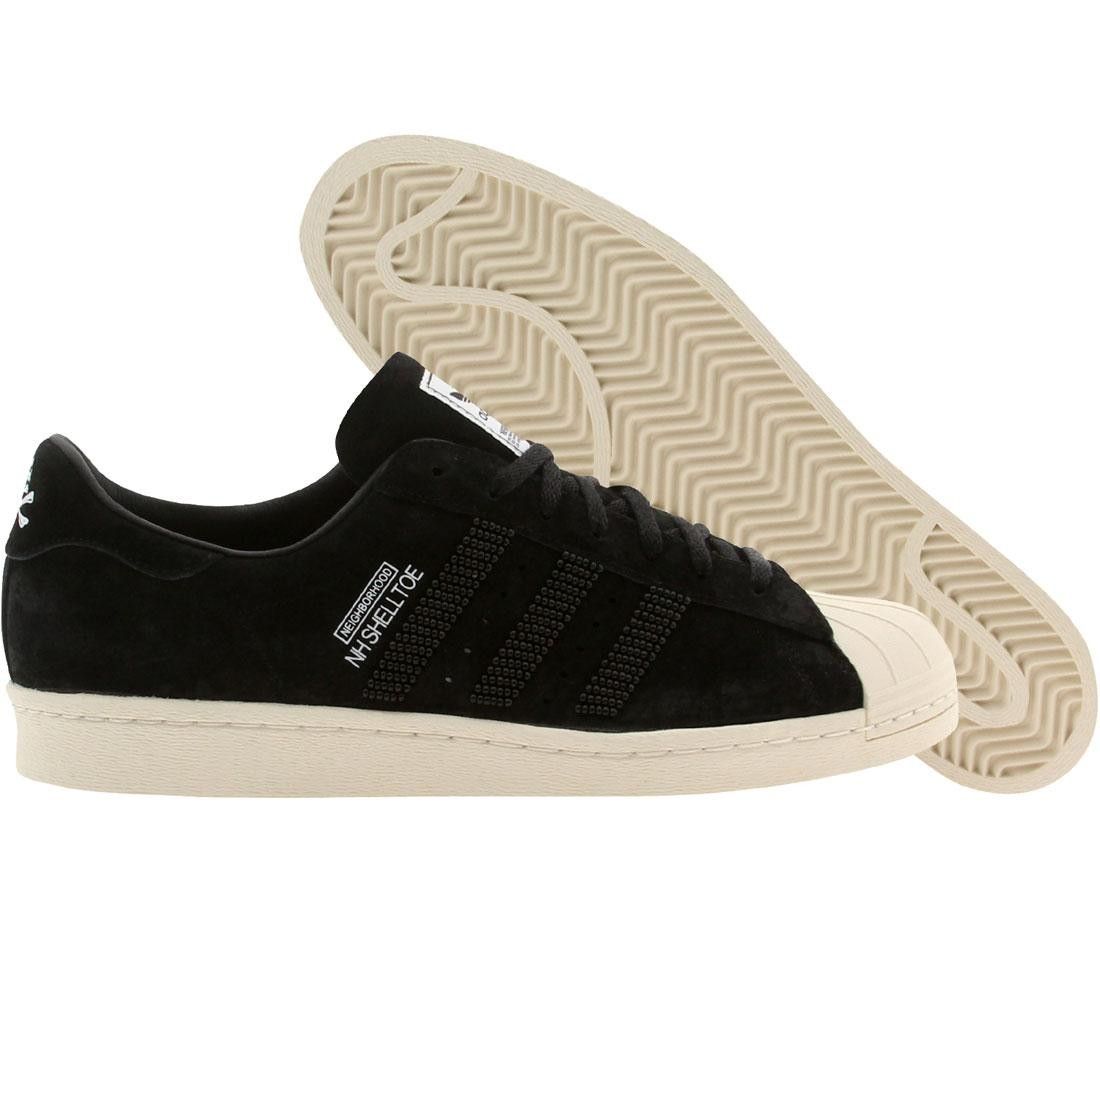 adidas superstar neighborhood